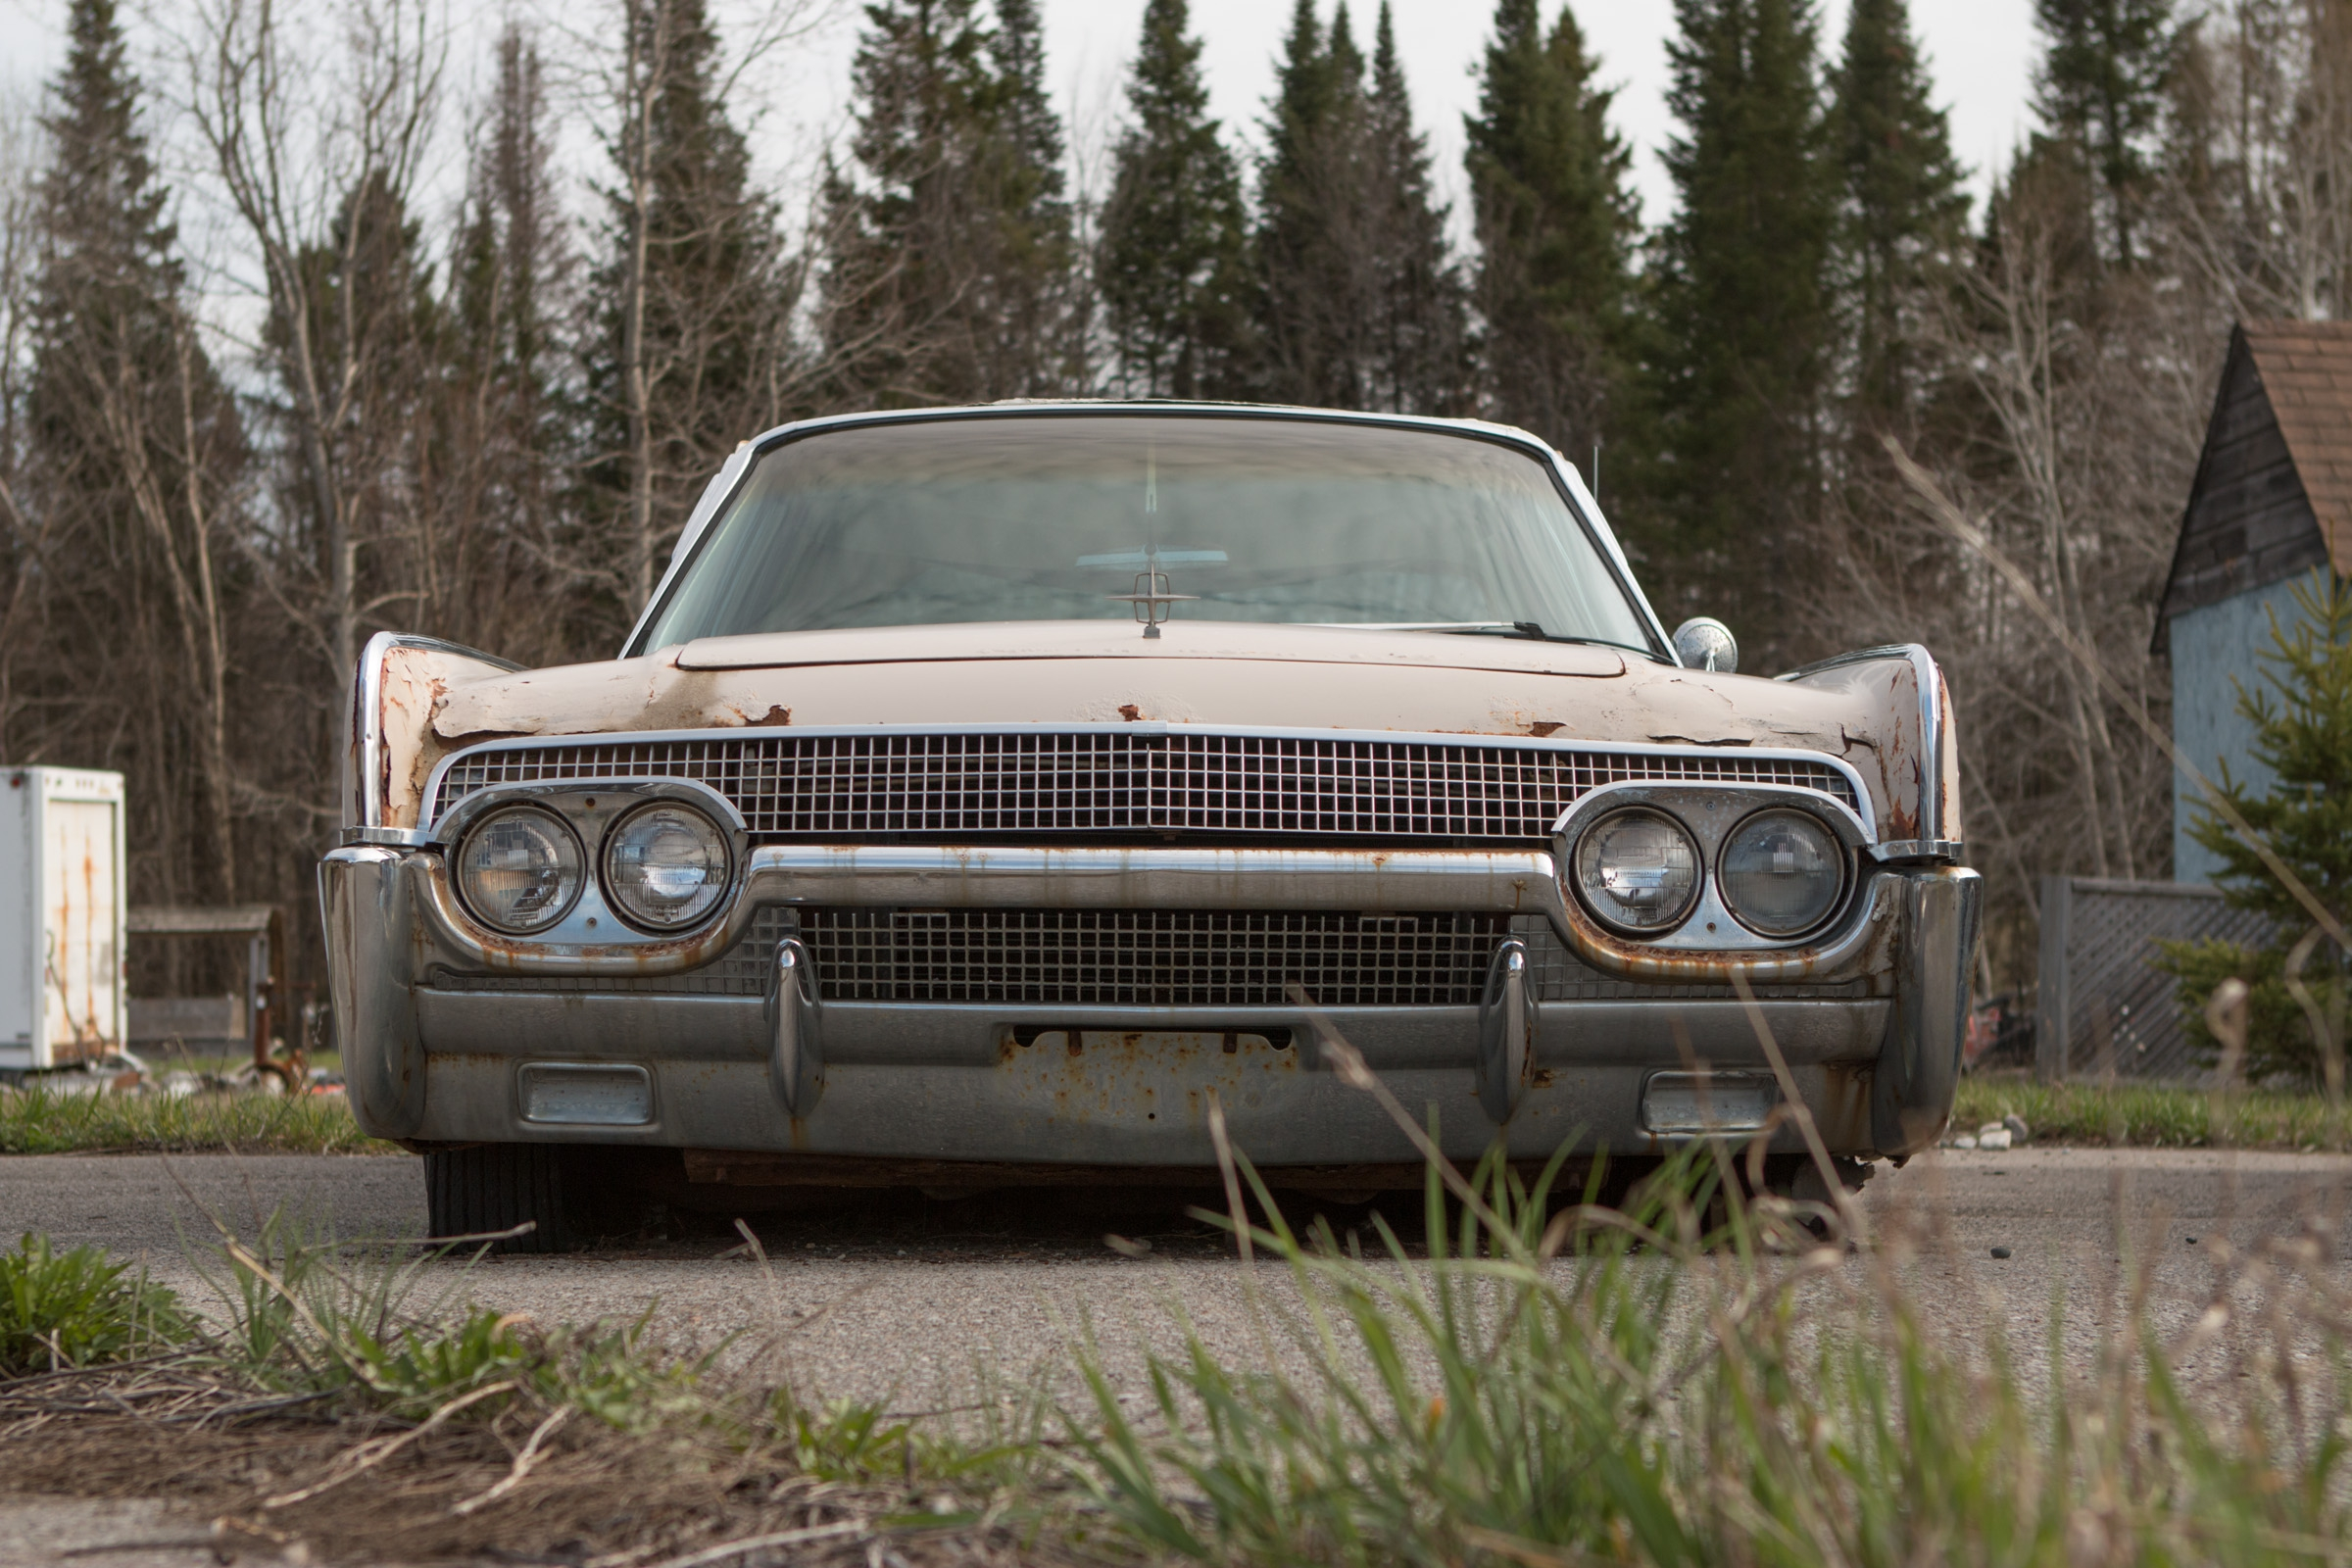 Rusting Lincoln Continentals